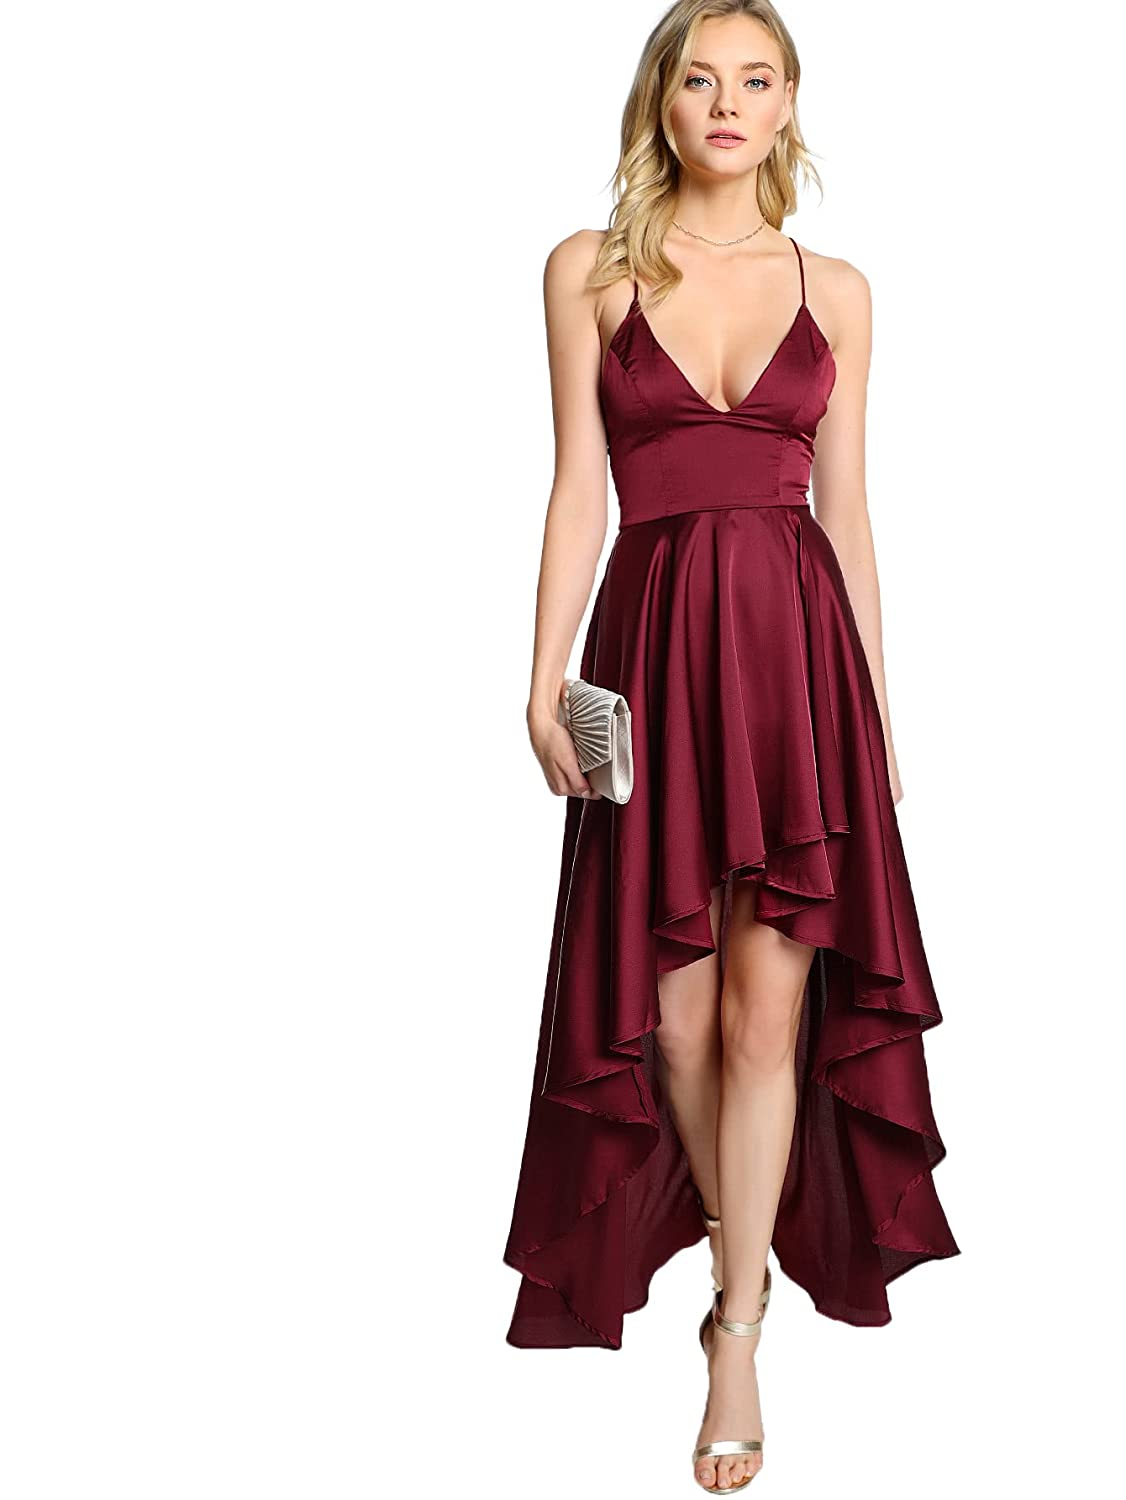 1a0c1d1576 Top 10 wholesale Burgundy Dress Fabric - Chinabrands.com